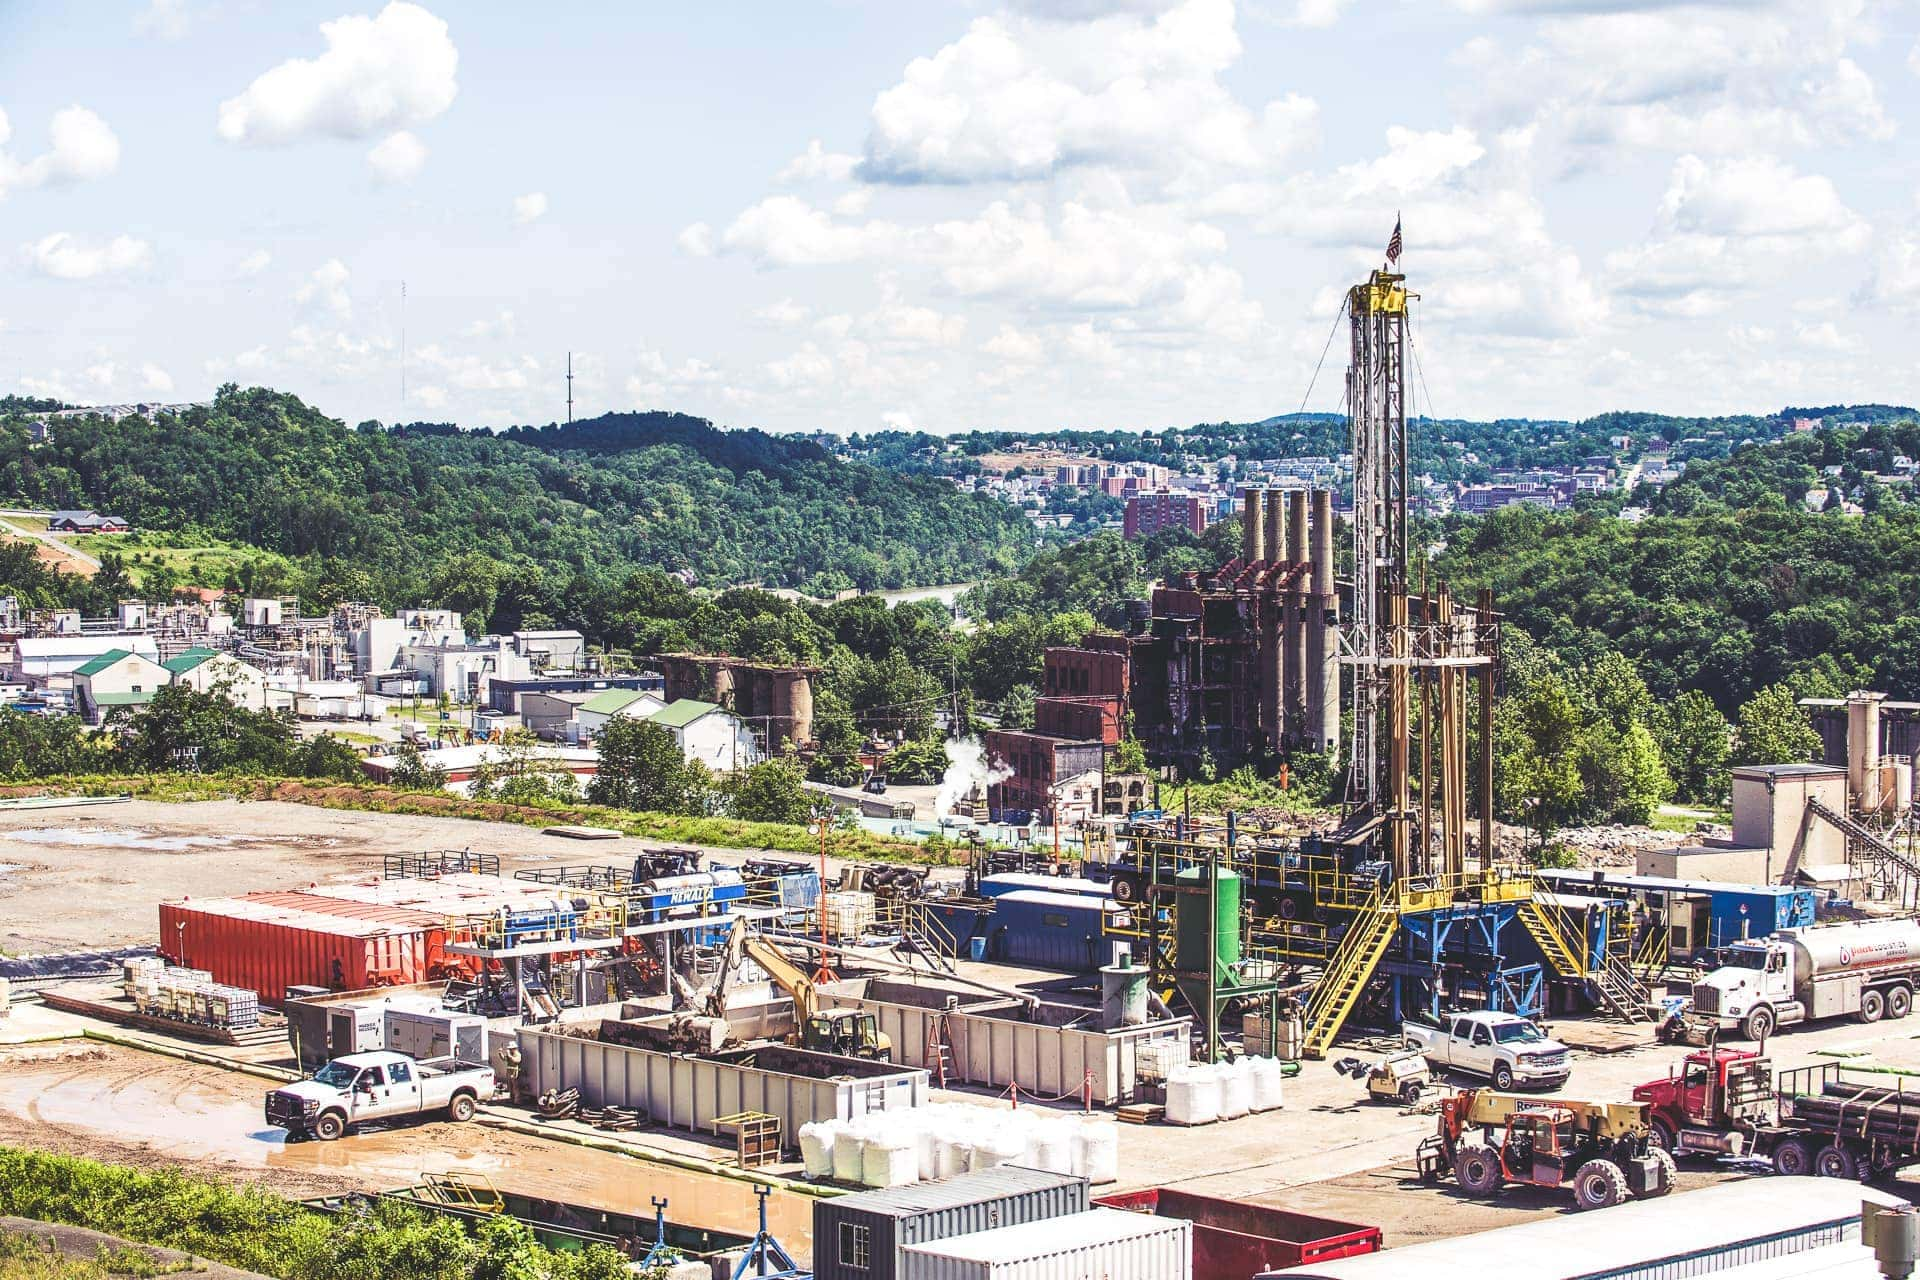 WVU advances technology and transparency at shale gas lab